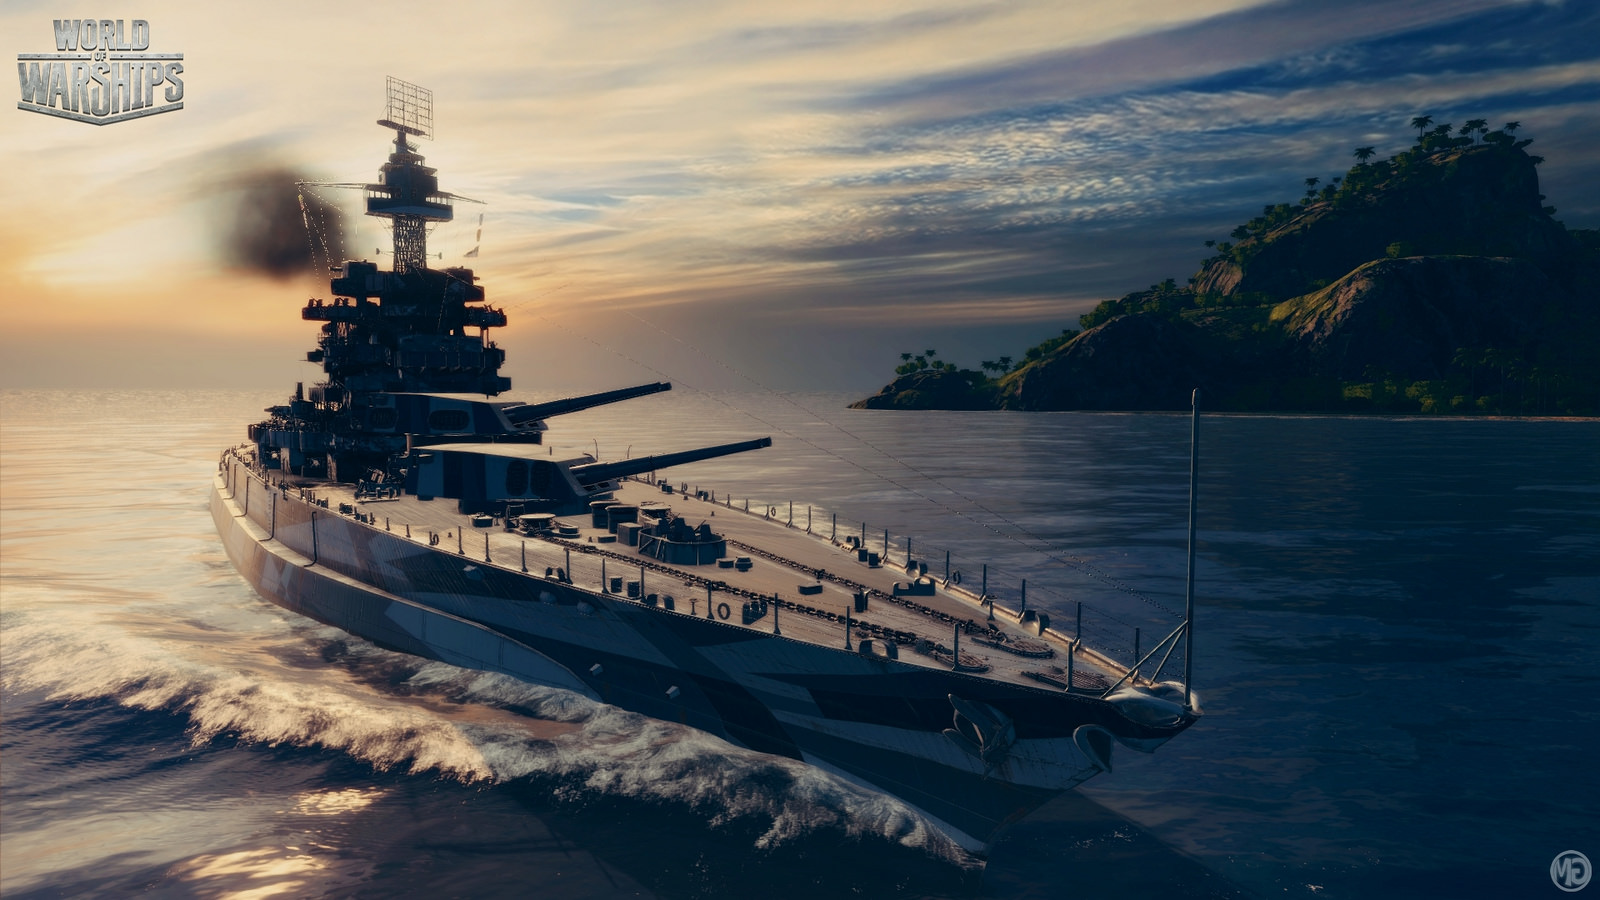 https-flic-kr-p-Tait-World-of-Warships-1080p-wallpaper-wp3806778